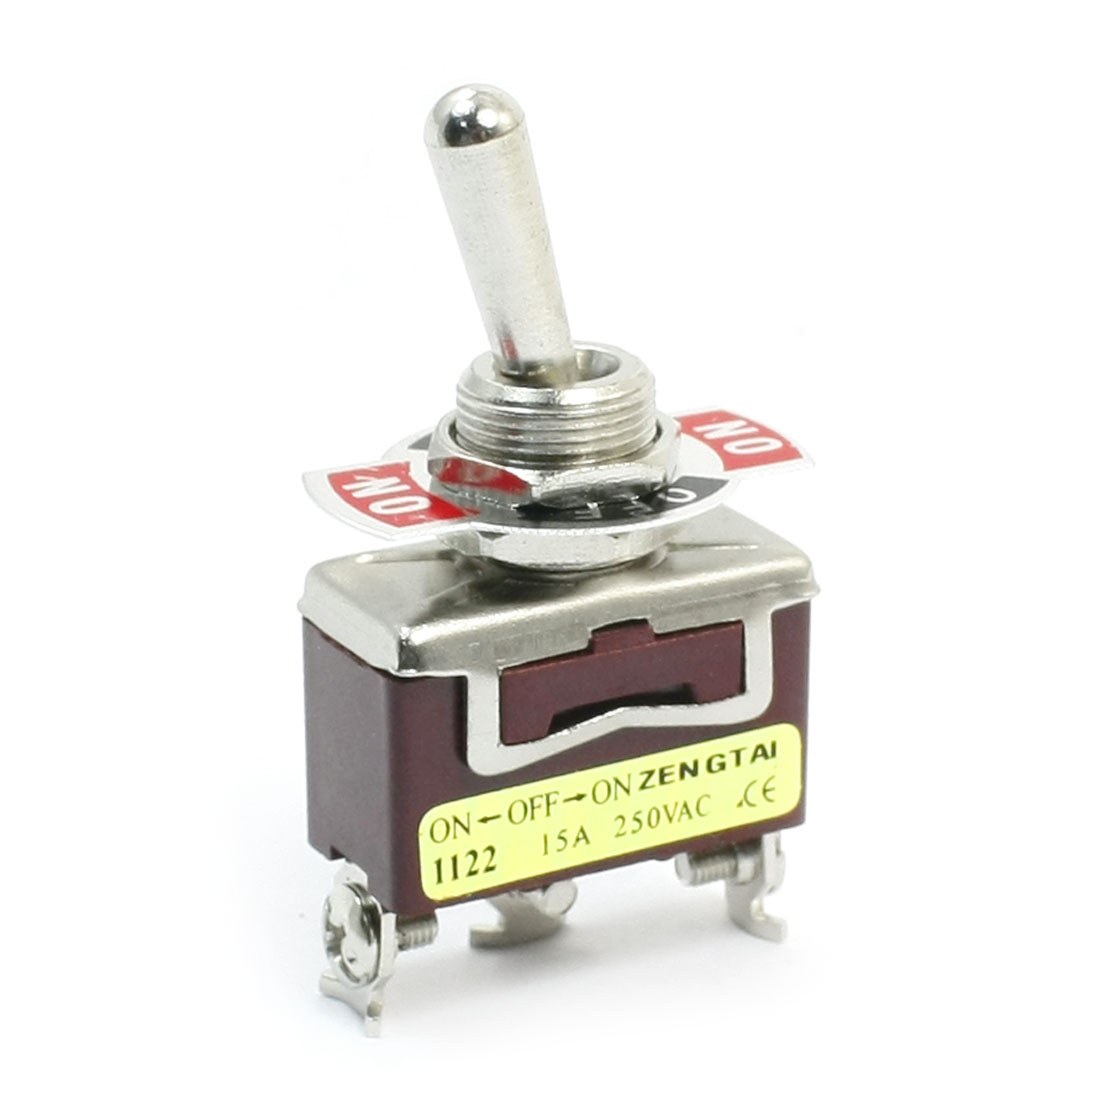 ON-OFF-ON SPDT 3 Screw Terminal Rocker Type Toggle Switch AC 250V 15A E-TEN1122